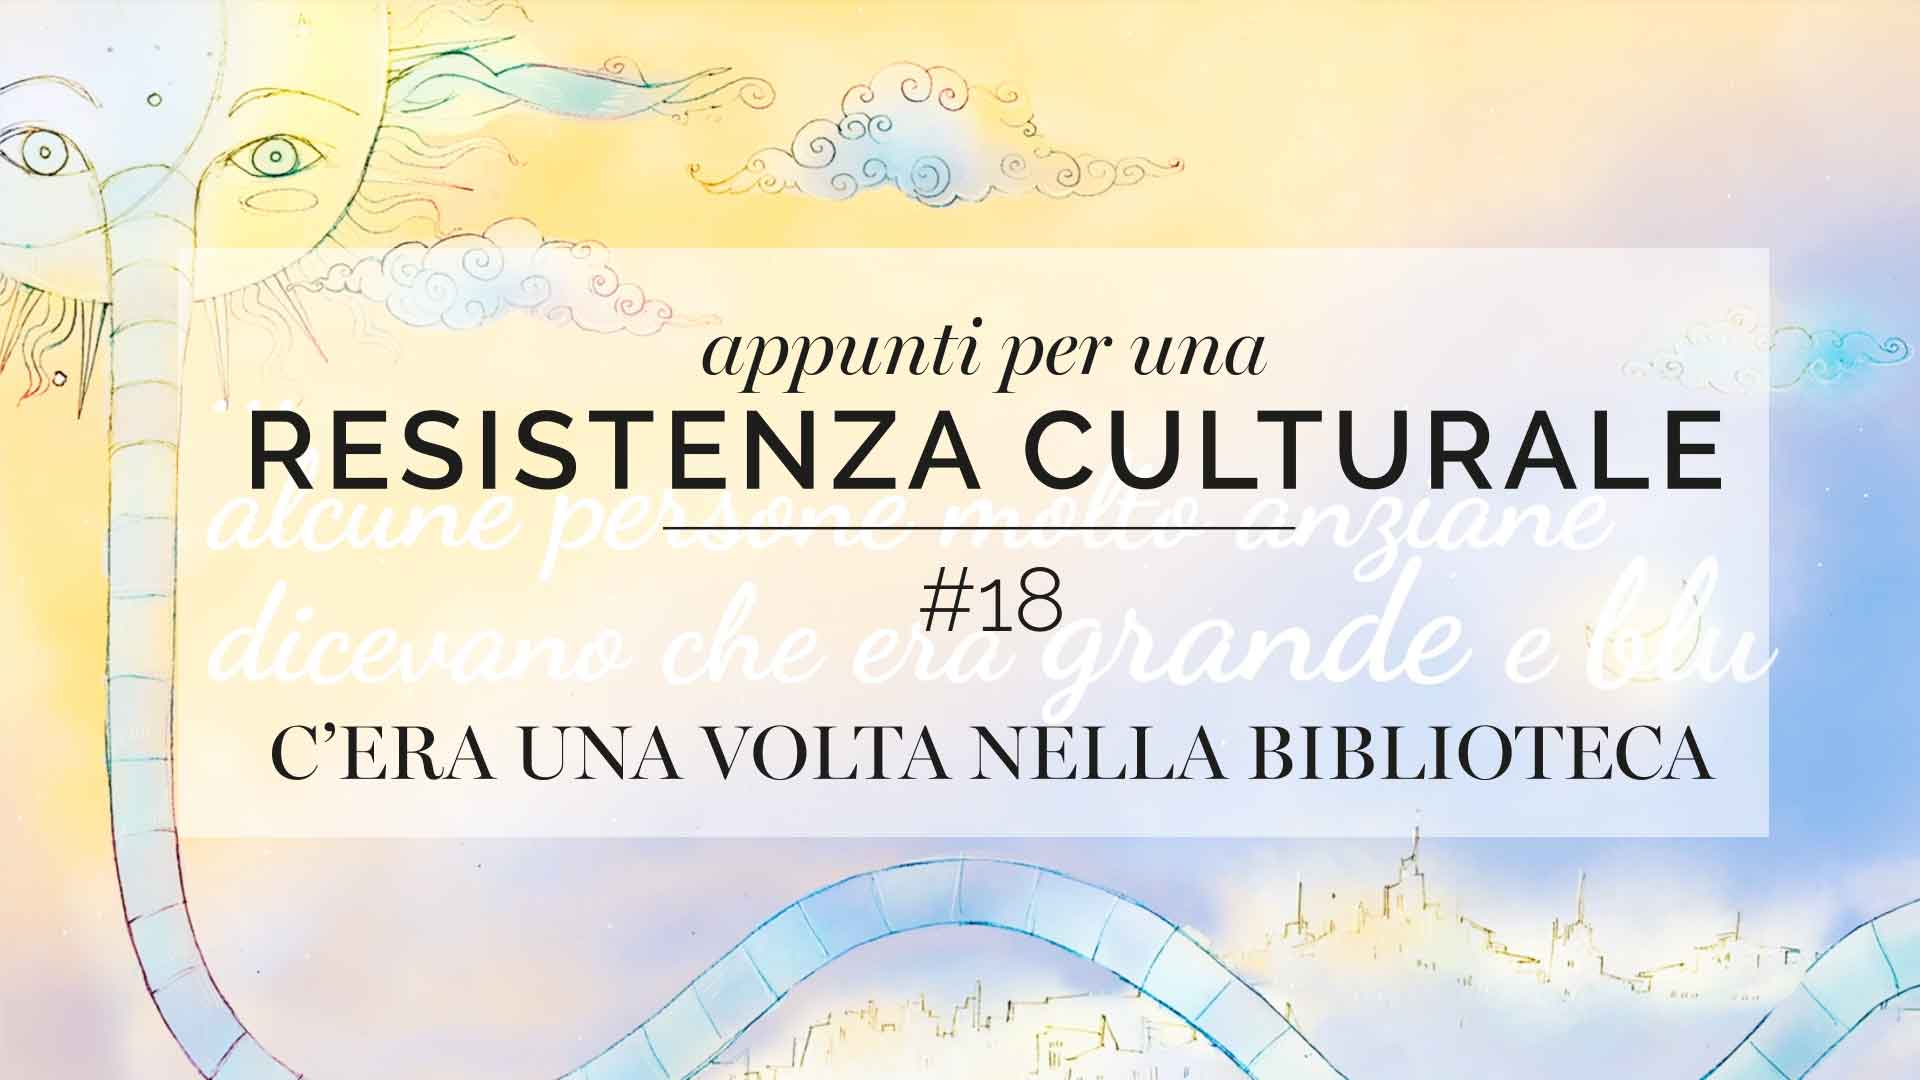 Appunti per una resistenza culturale #18<br>Once upon a time in the library